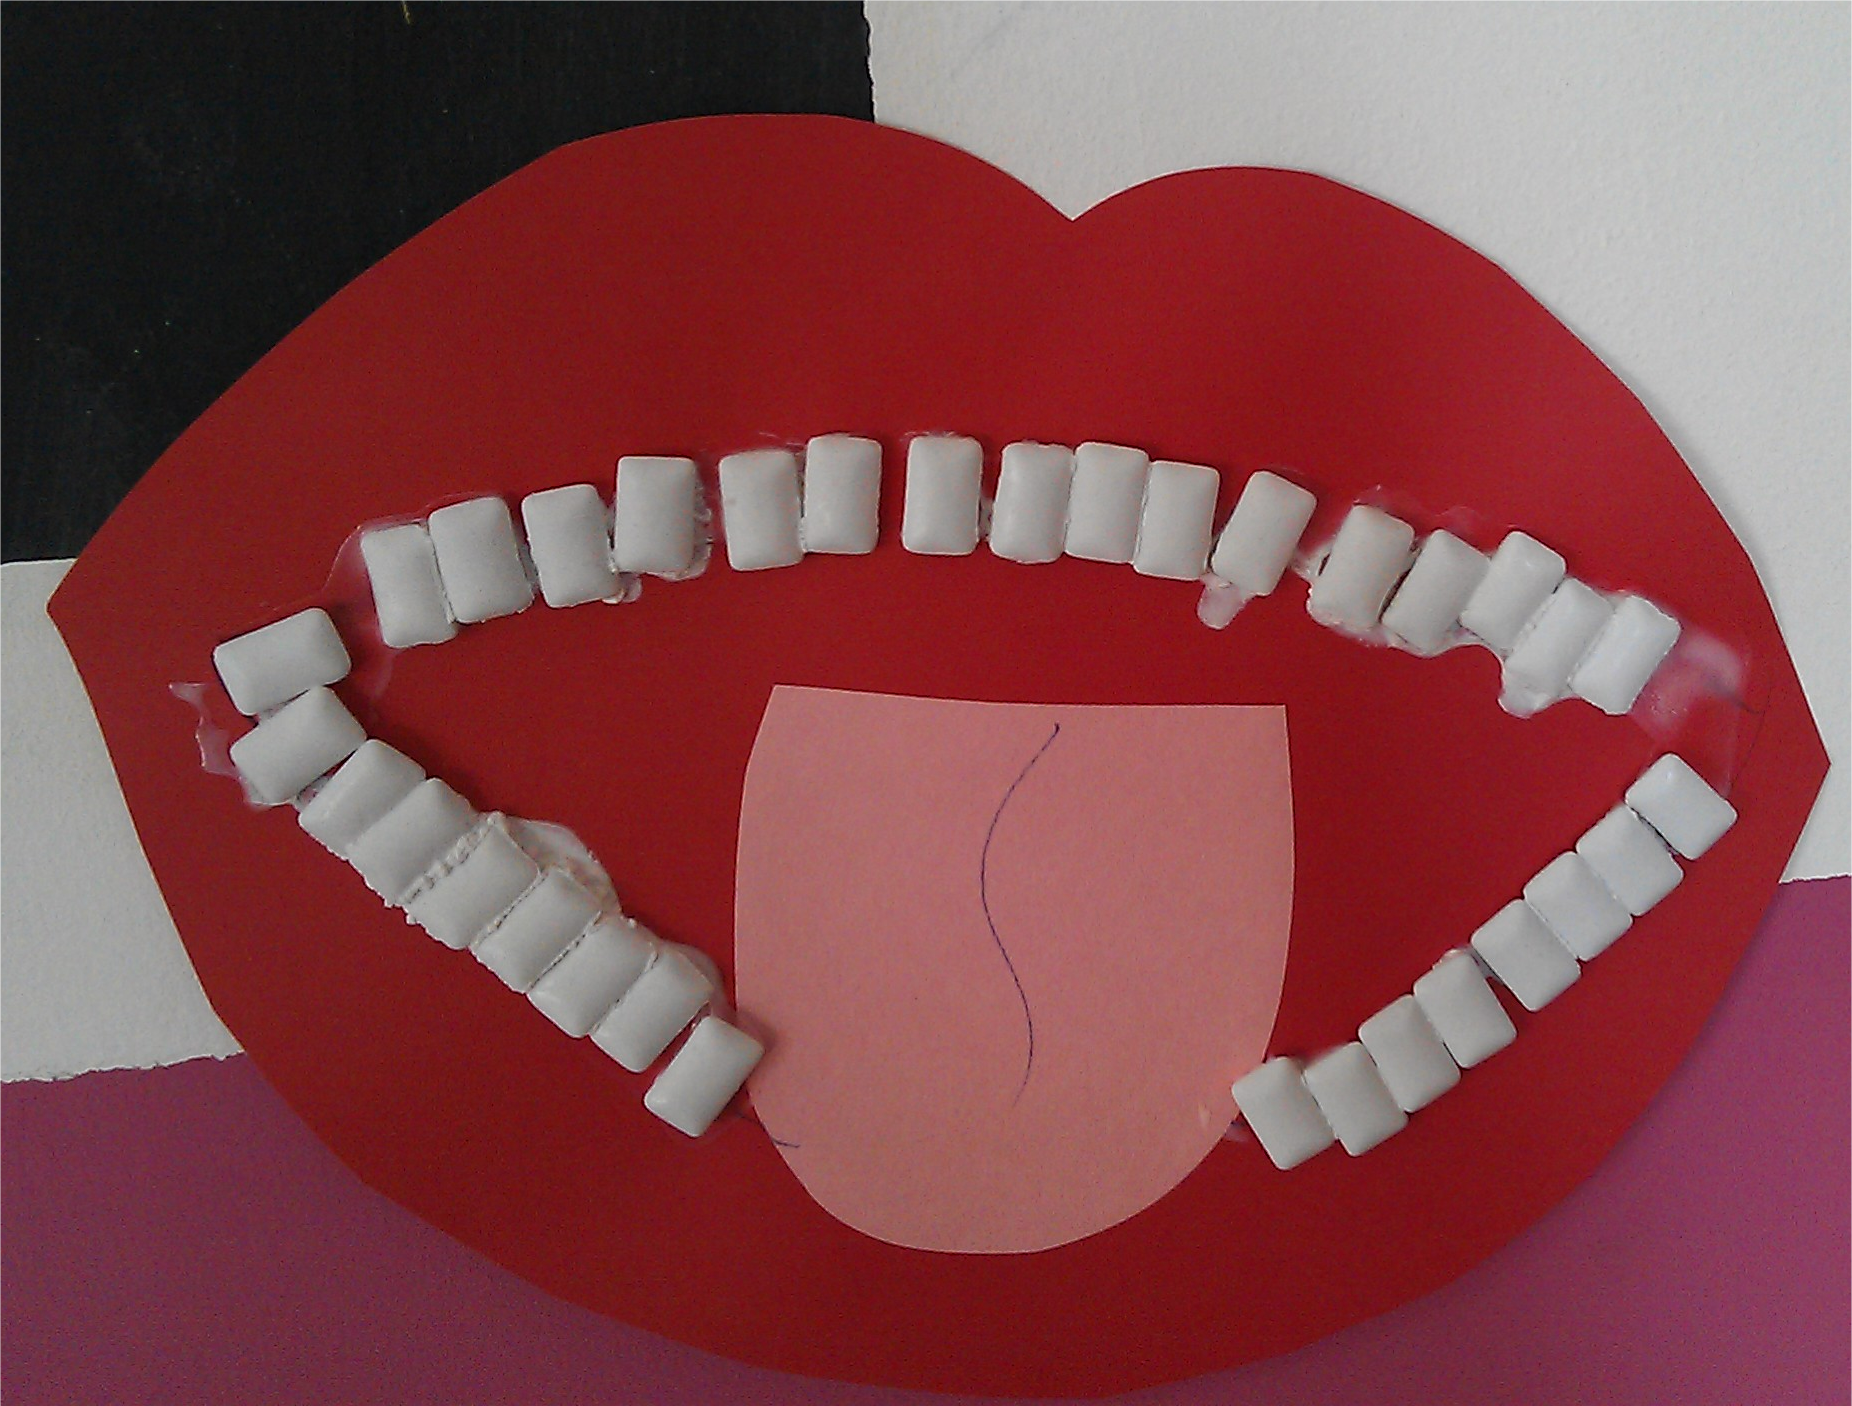 Going to the dentist craft. Use chewing gum for the teeth. Made by @LearnPlayAlcala